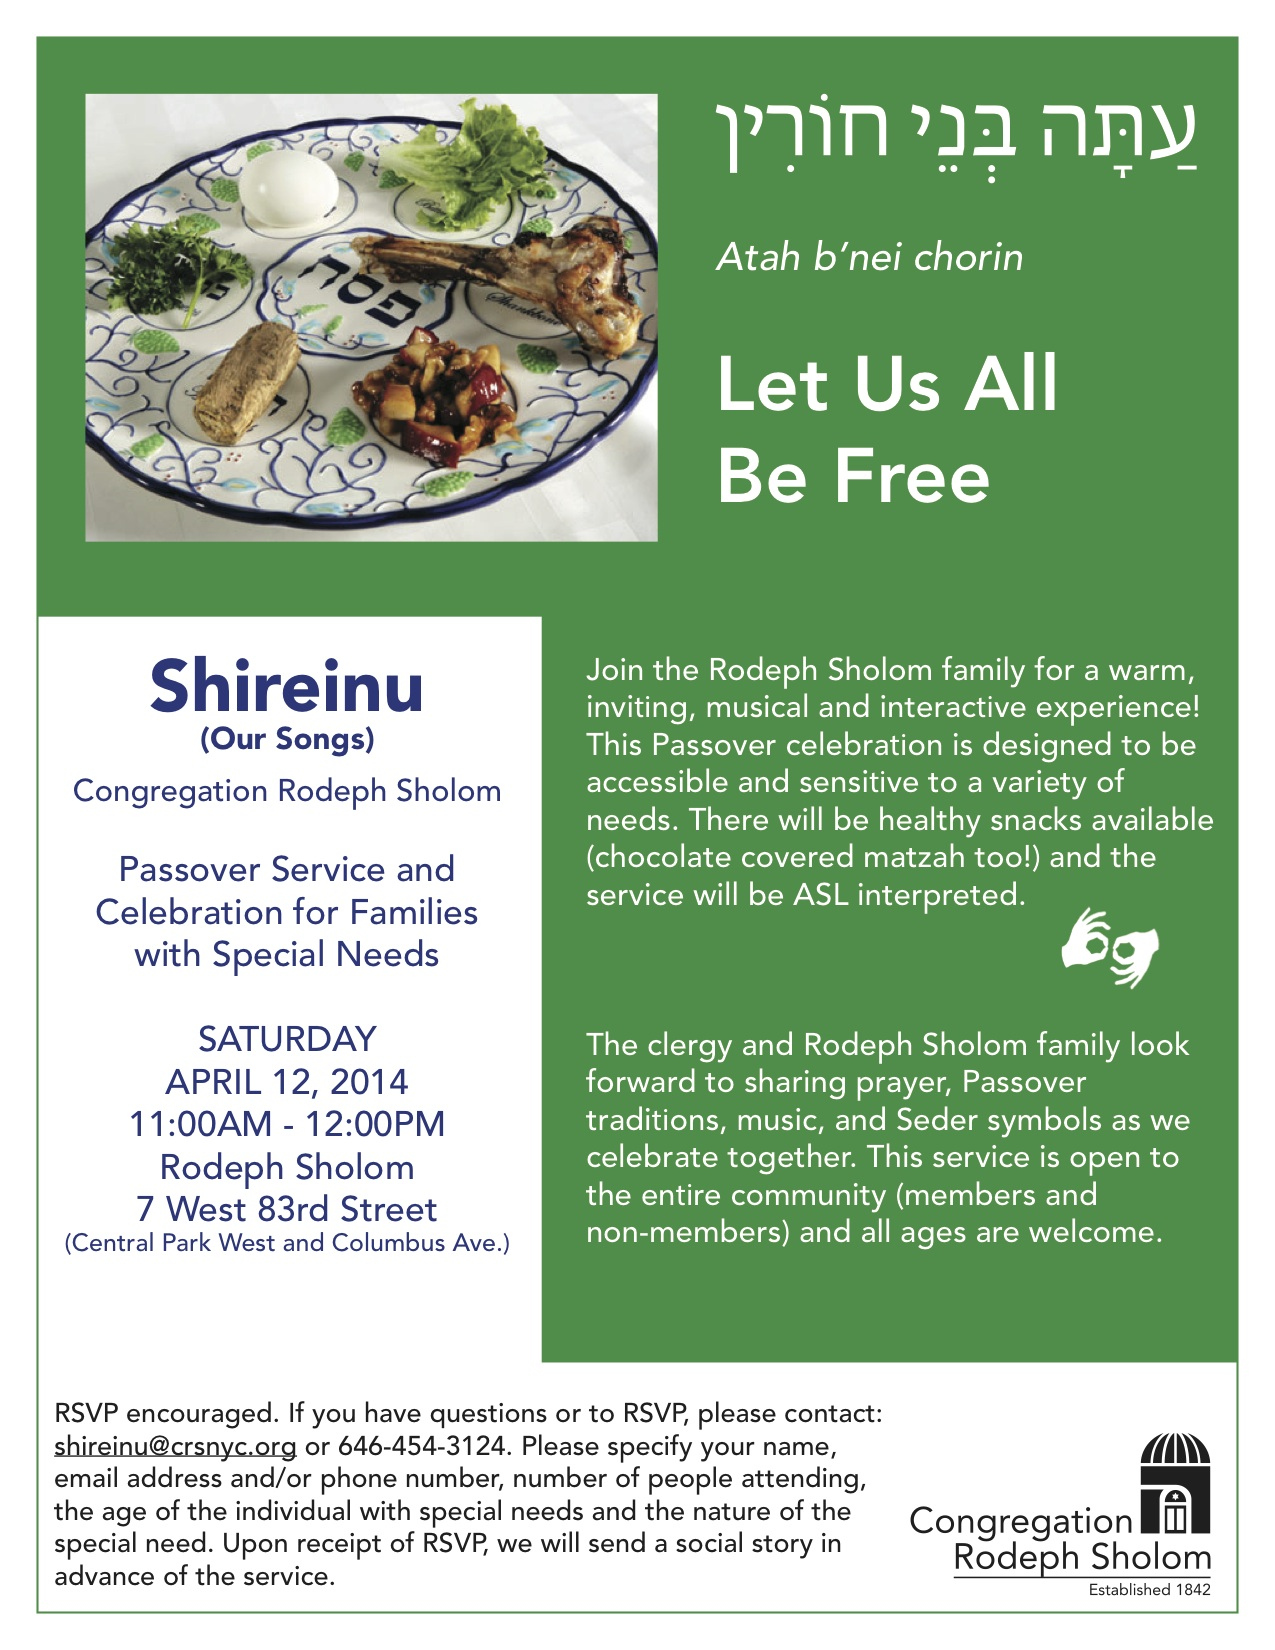 shireinu-holidays-passover copy